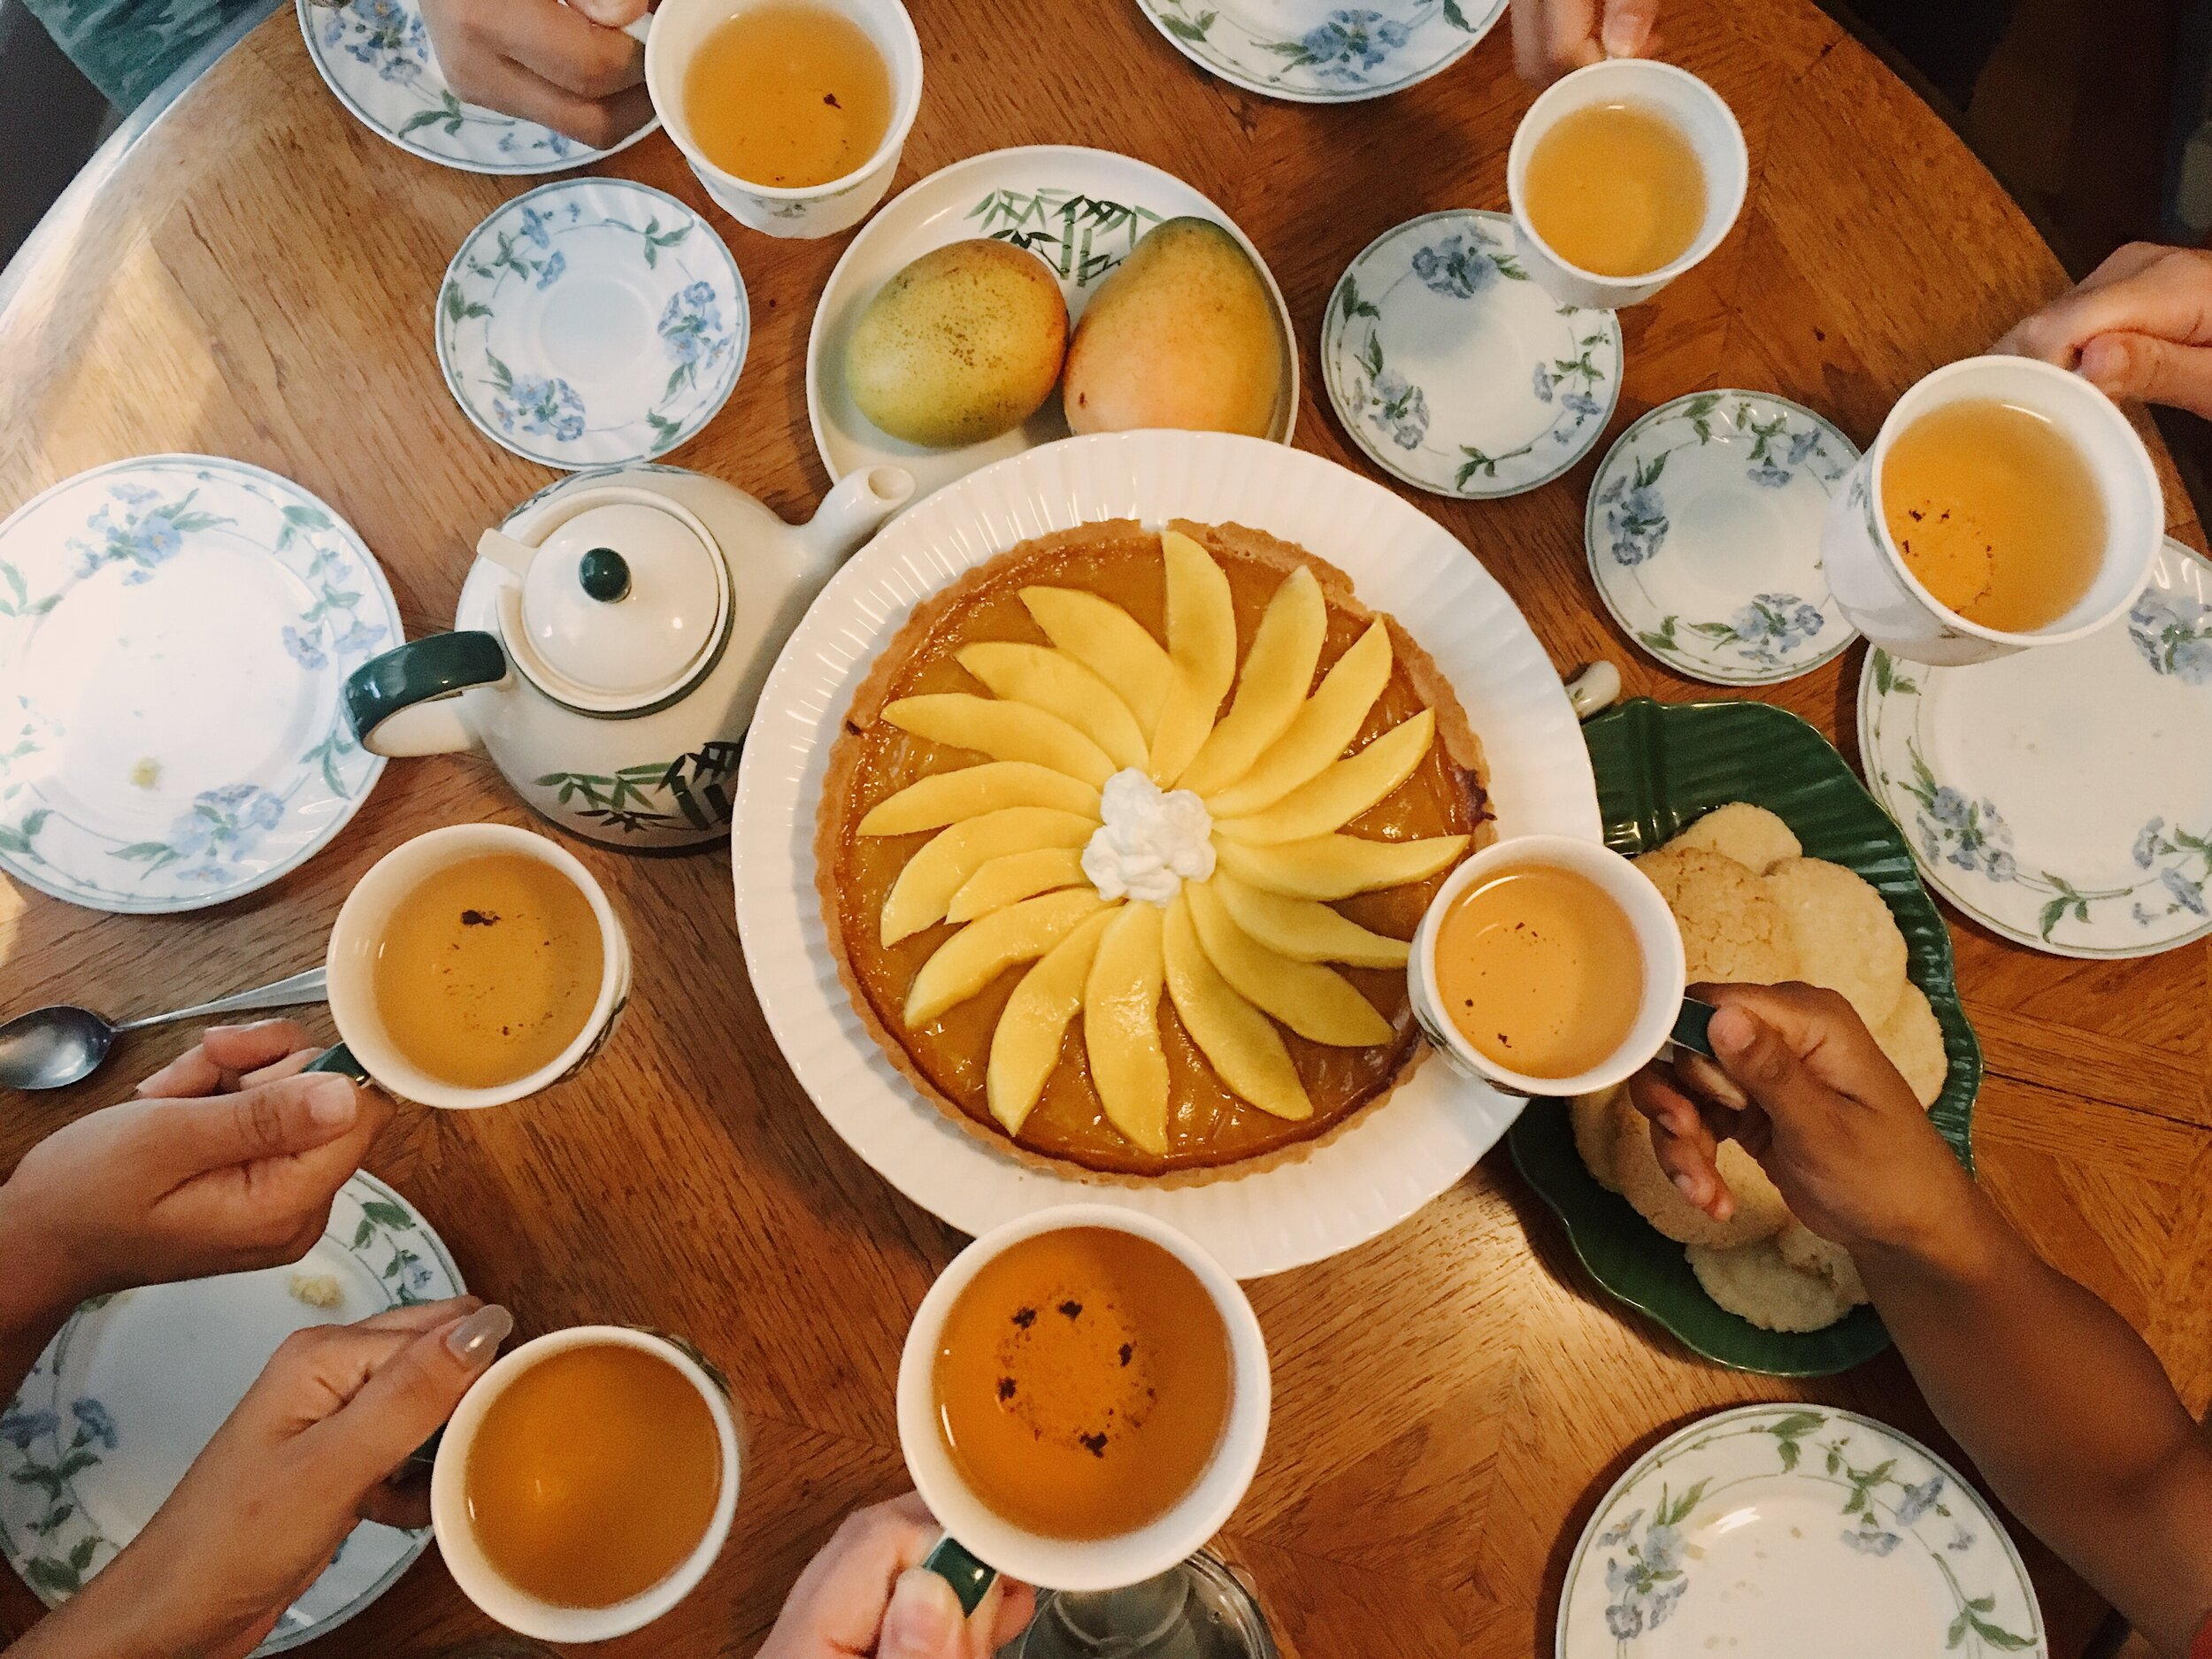 I had a few friends over for teatime the other day! We baked chewy coconut-lime sugar cookies and a magnificent mango passionfruit tart.